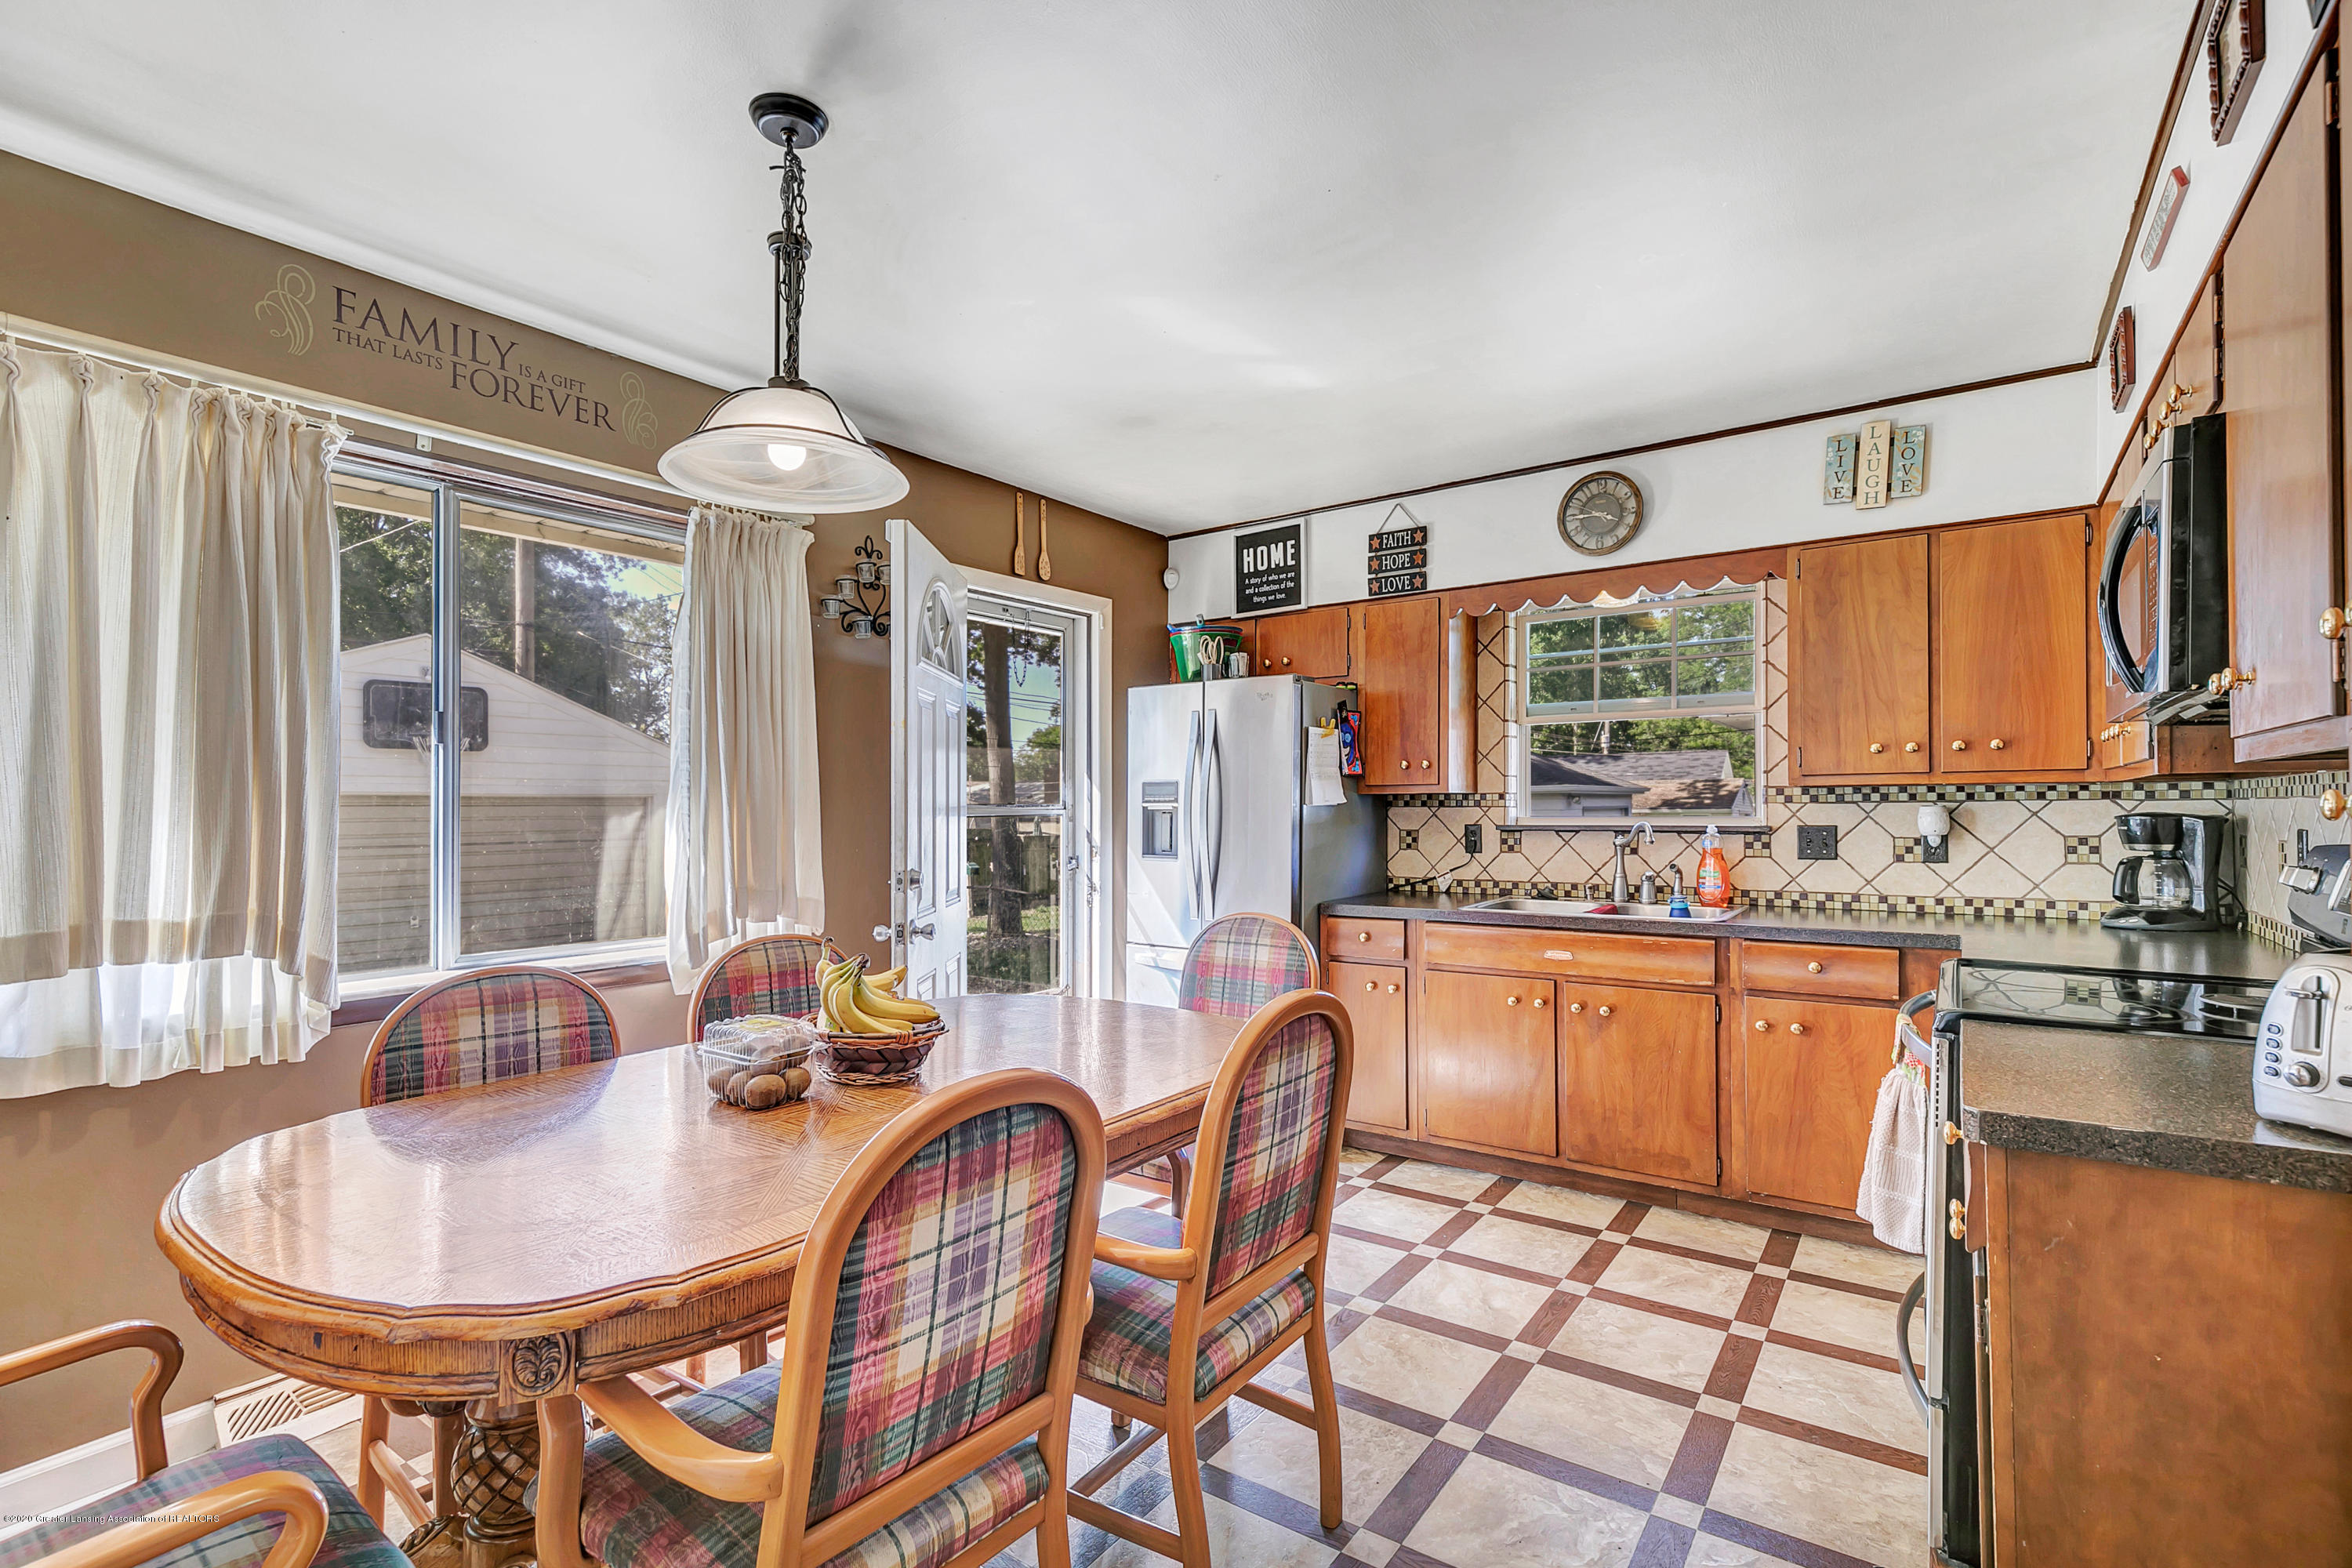 2844 S Deerfield Ave - 9I3A2561 - 6